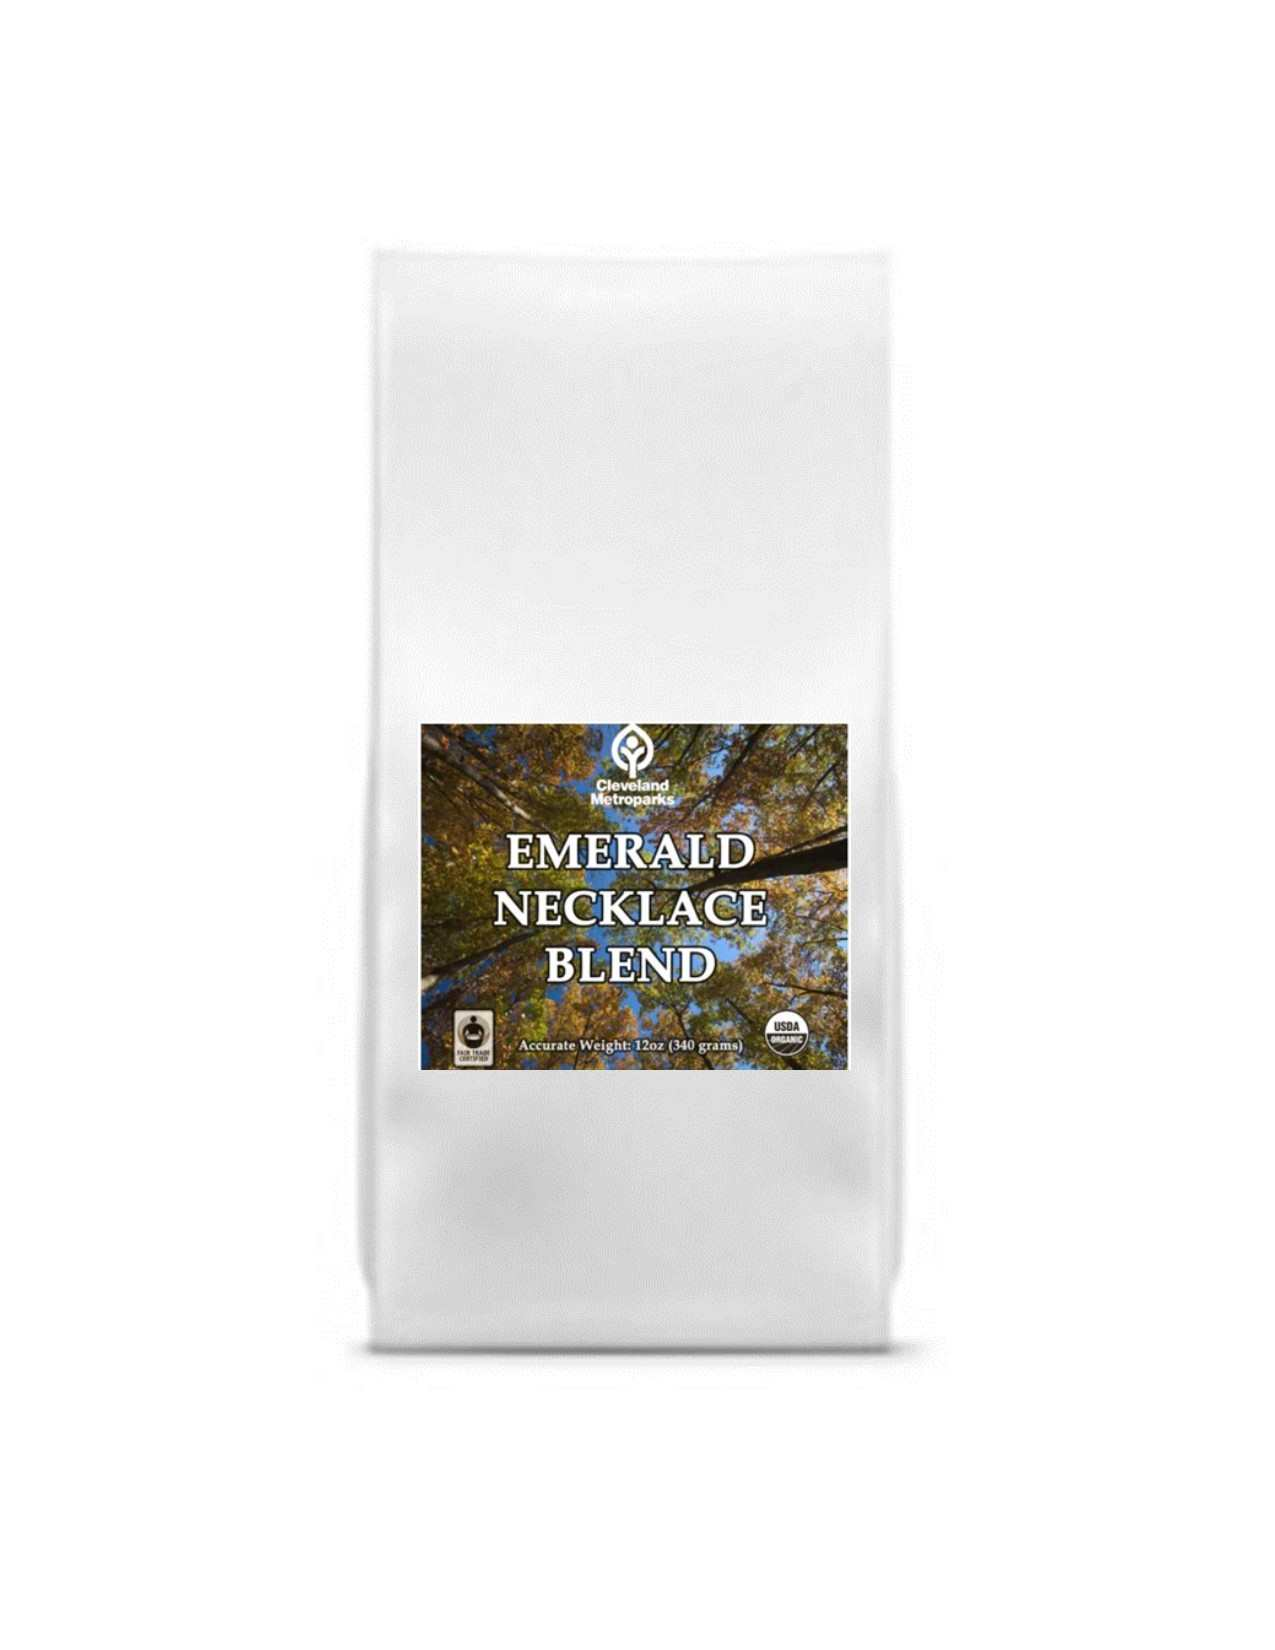 Emerald Necklace Blend Ground Coffee